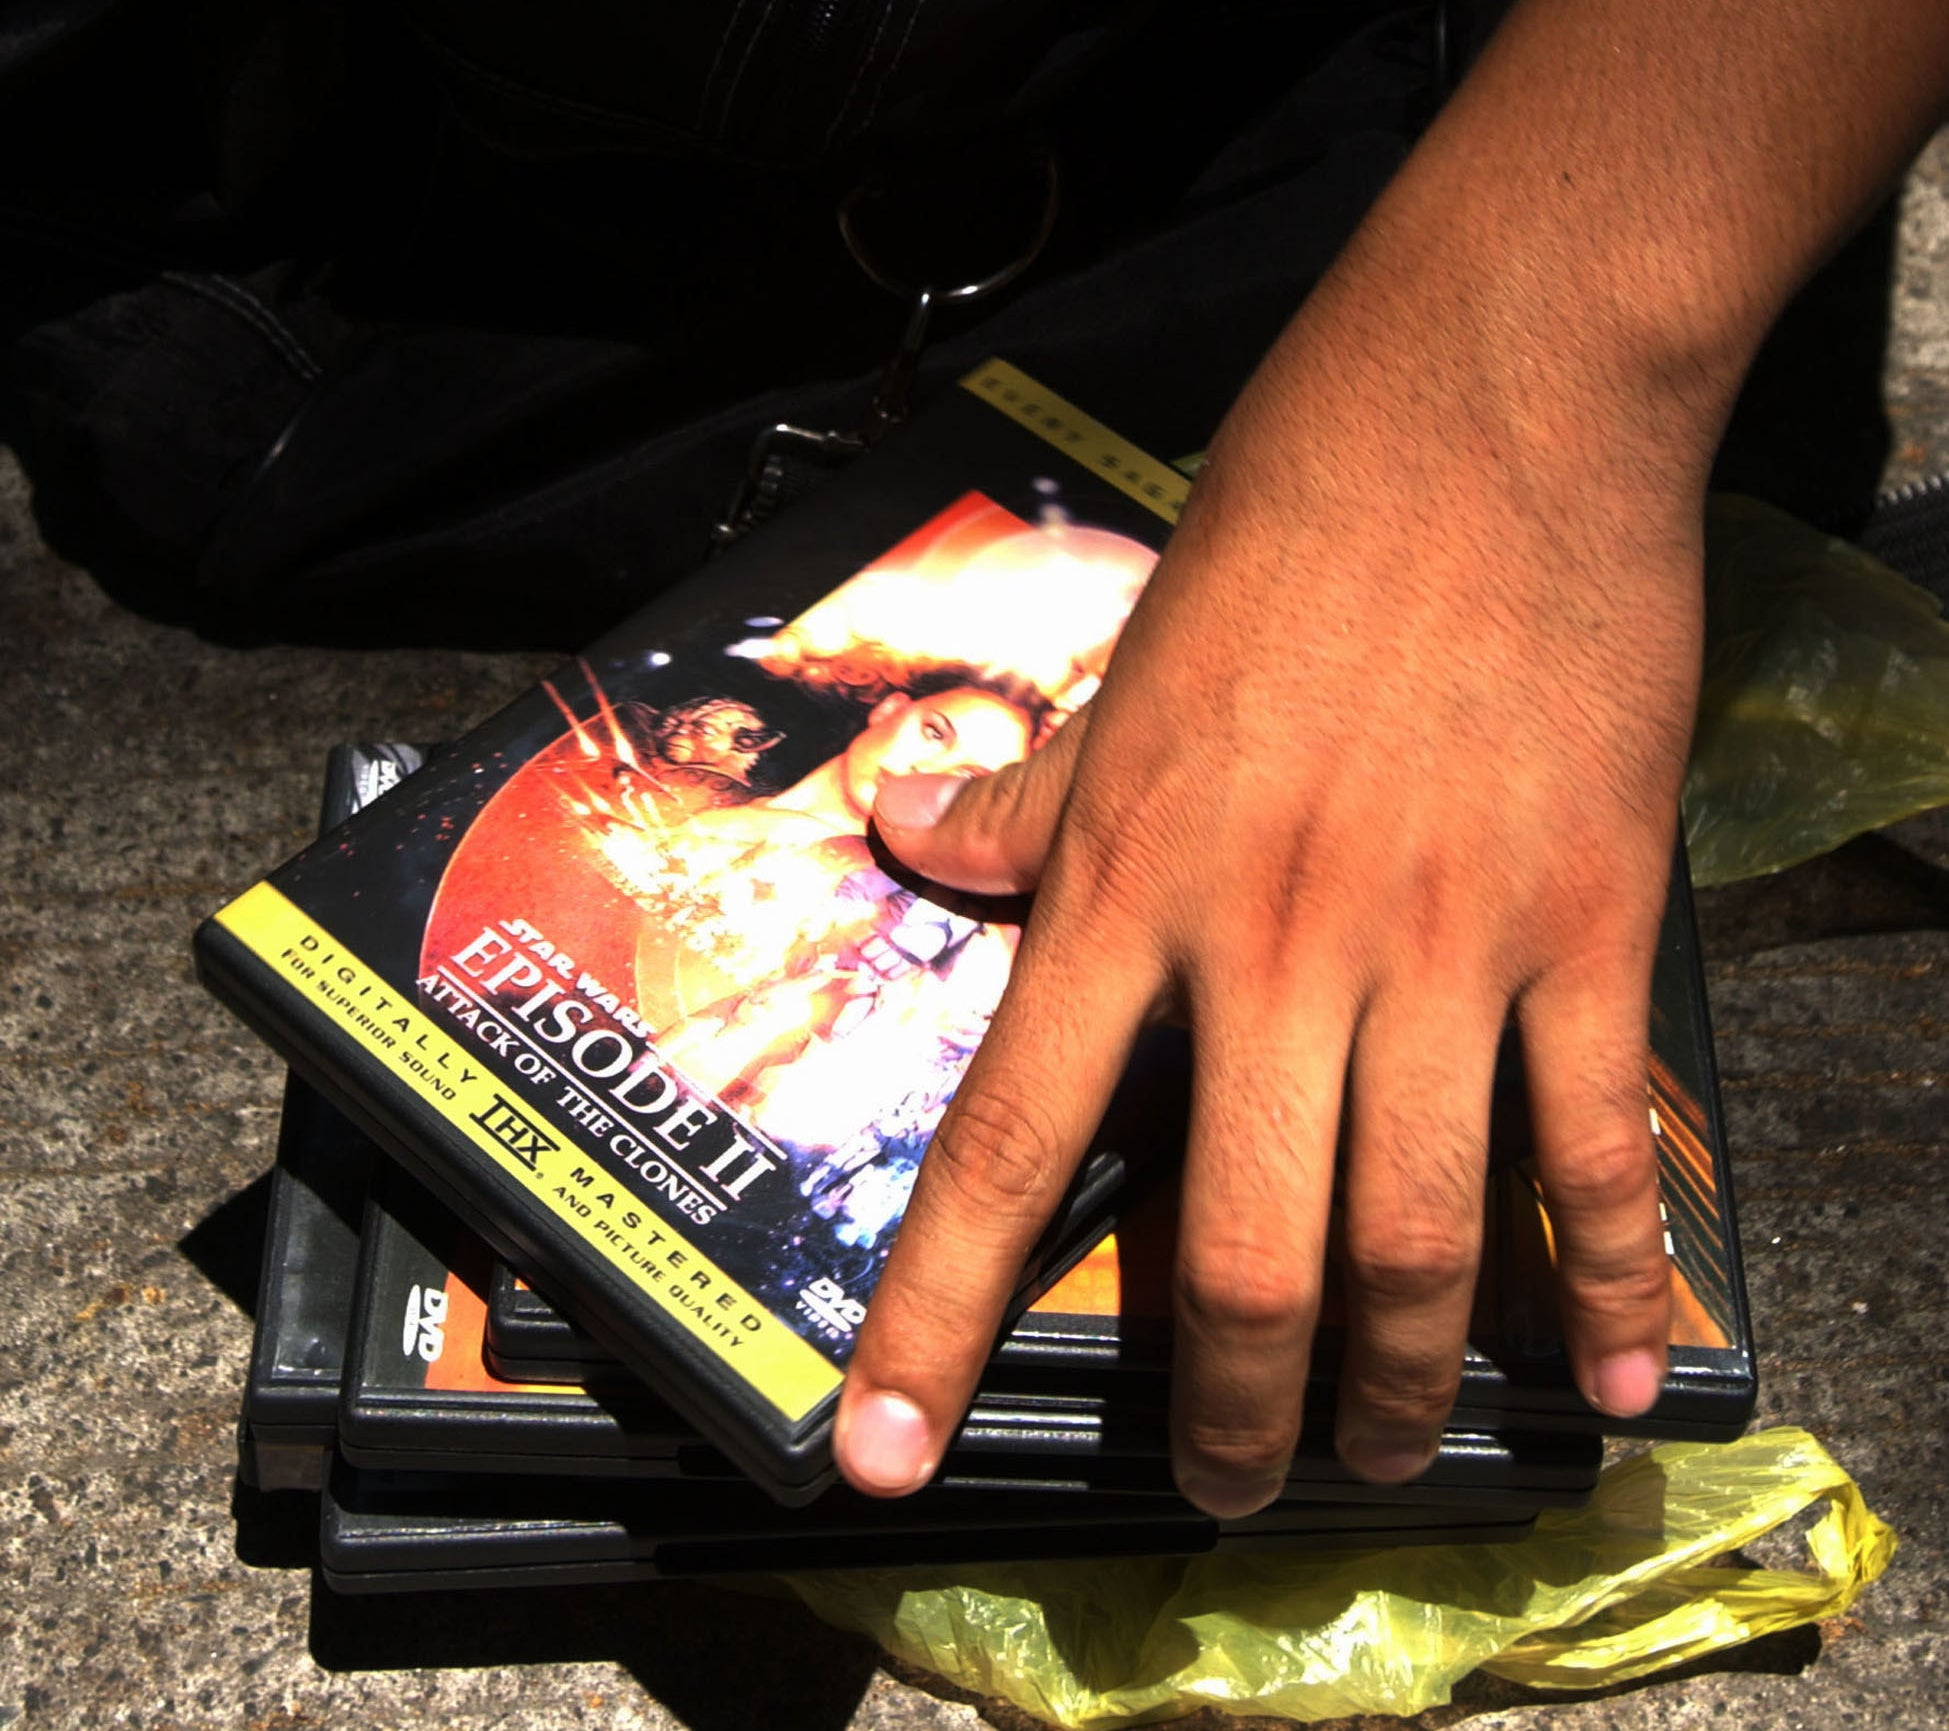 A hand holding several bootleg DVDs